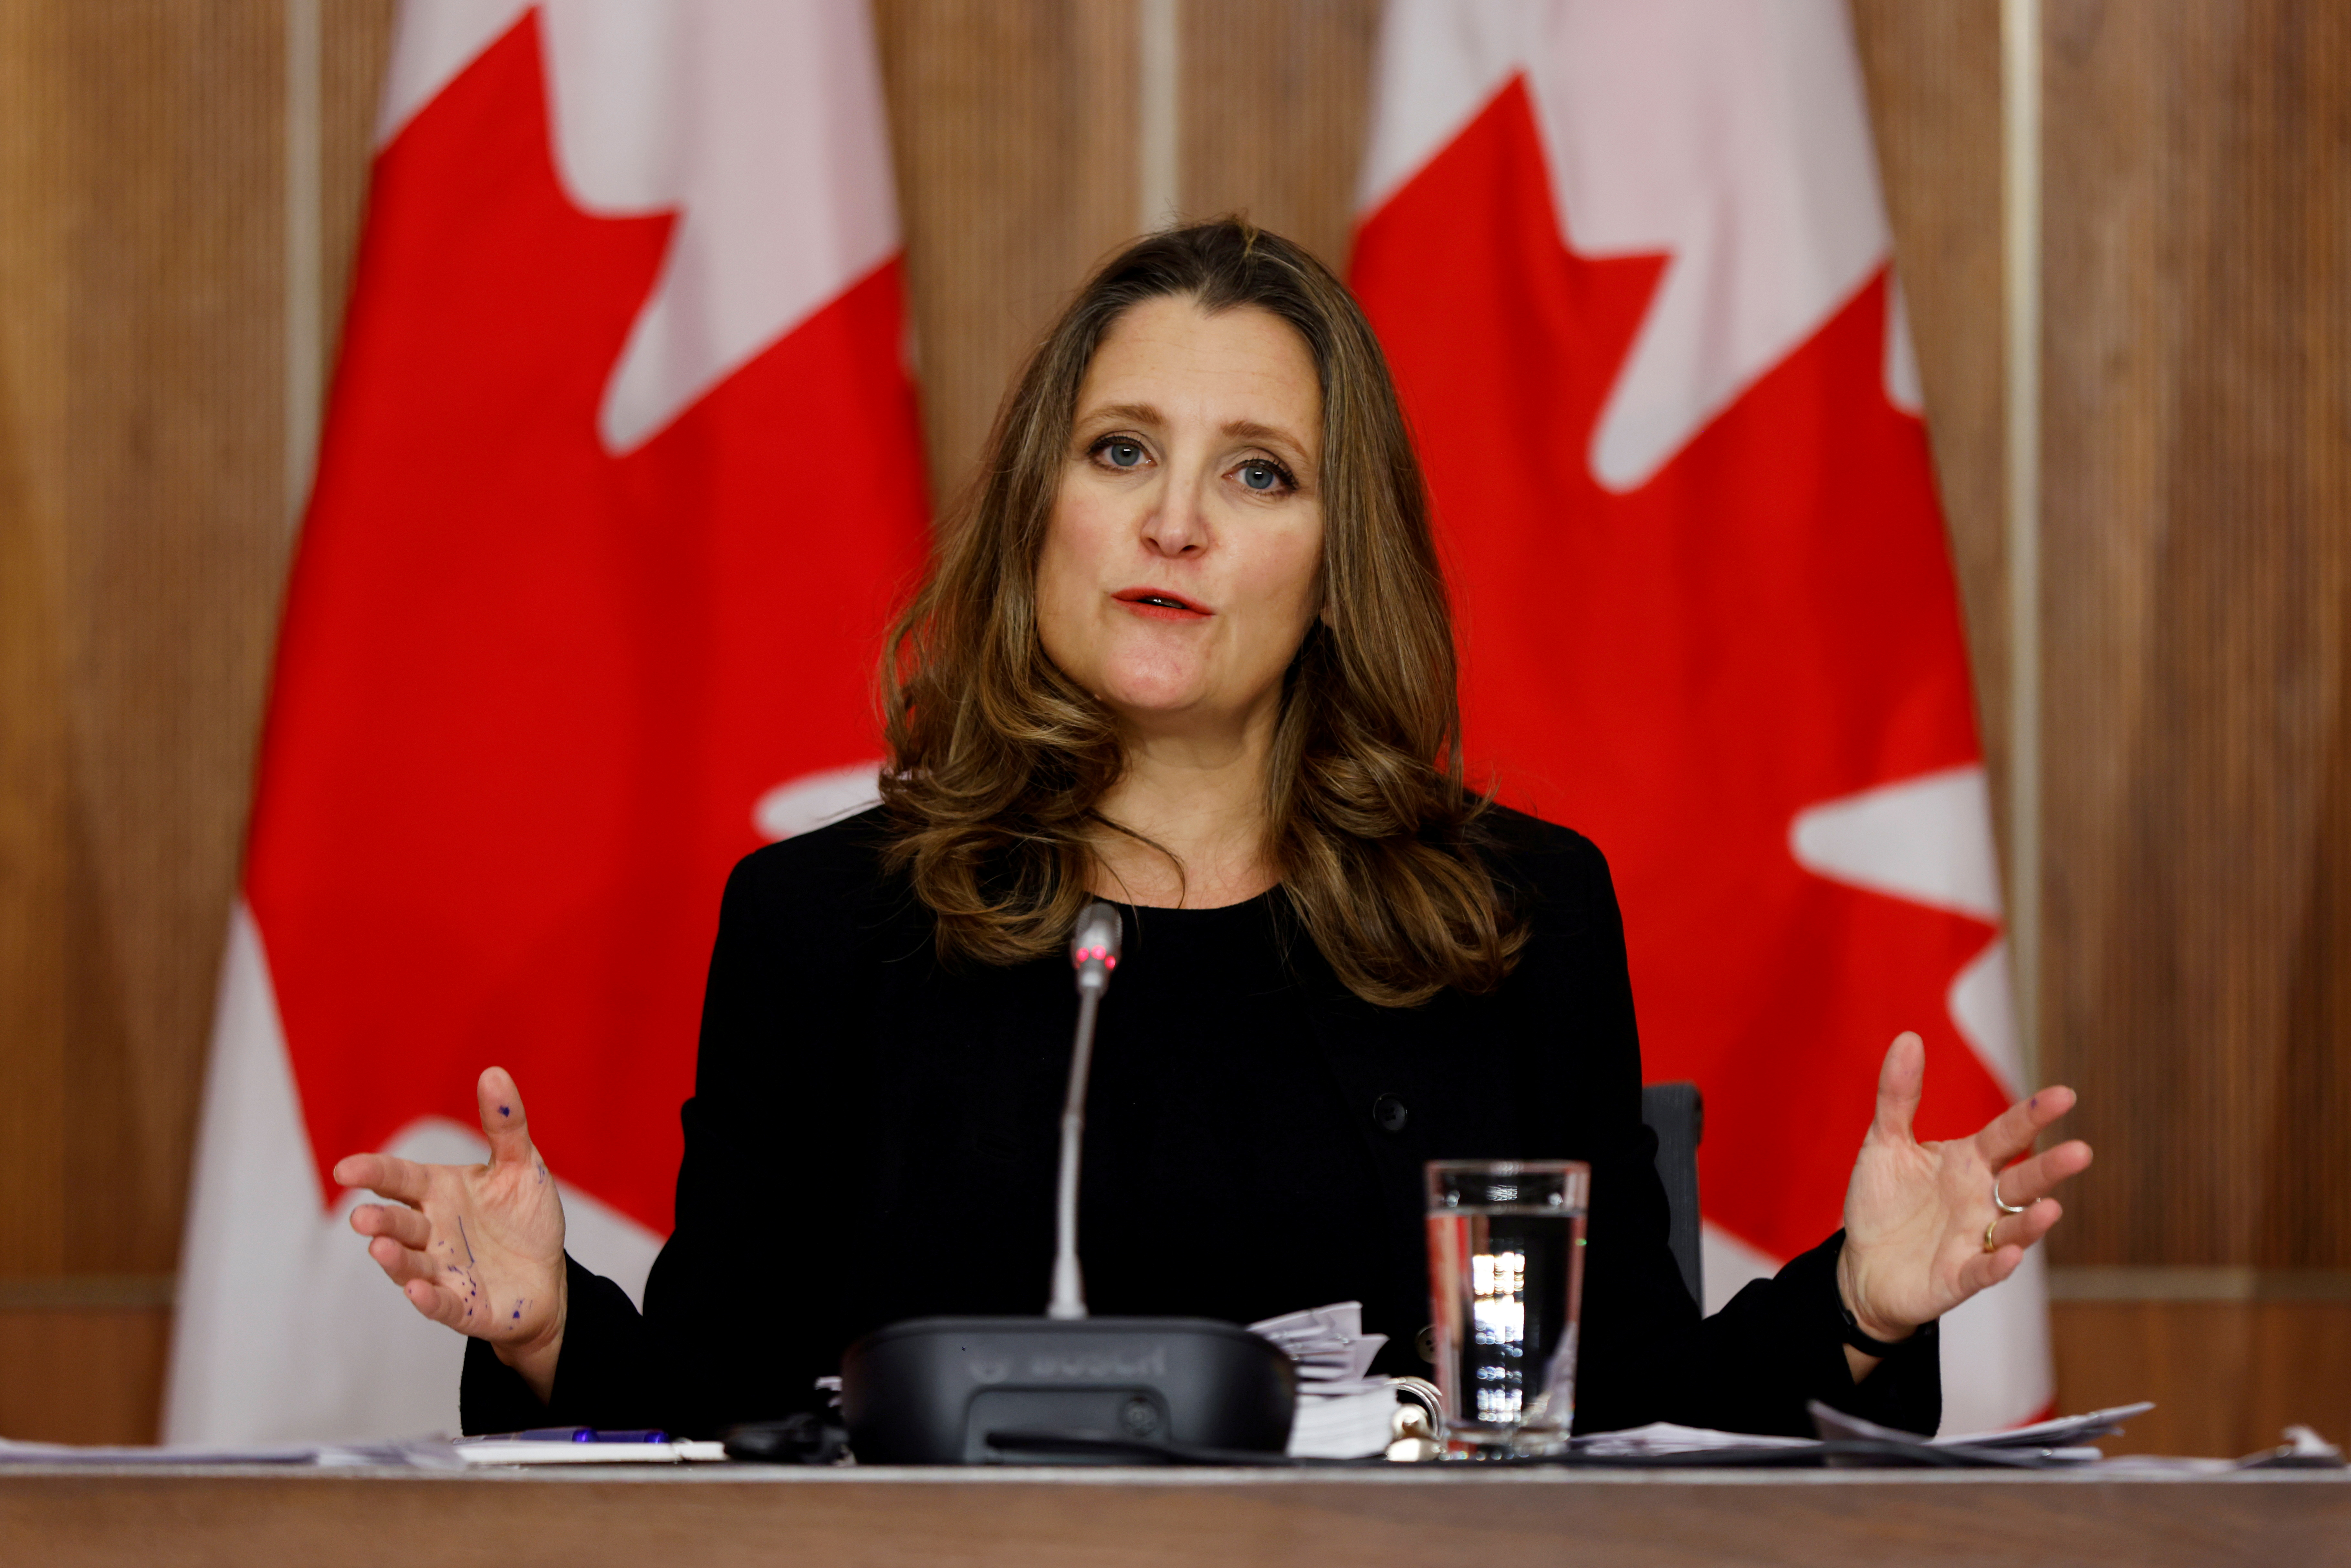 Canada's Deputy Prime Minister and Minister of Finance Chrystia Freeland speaks to news media before unveiling her first fiscal update, the Fall Economic Statement 2020, in Ottawa, Ontario, Canada November 30, 2020. REUTERS/Blair Gable/File Photo